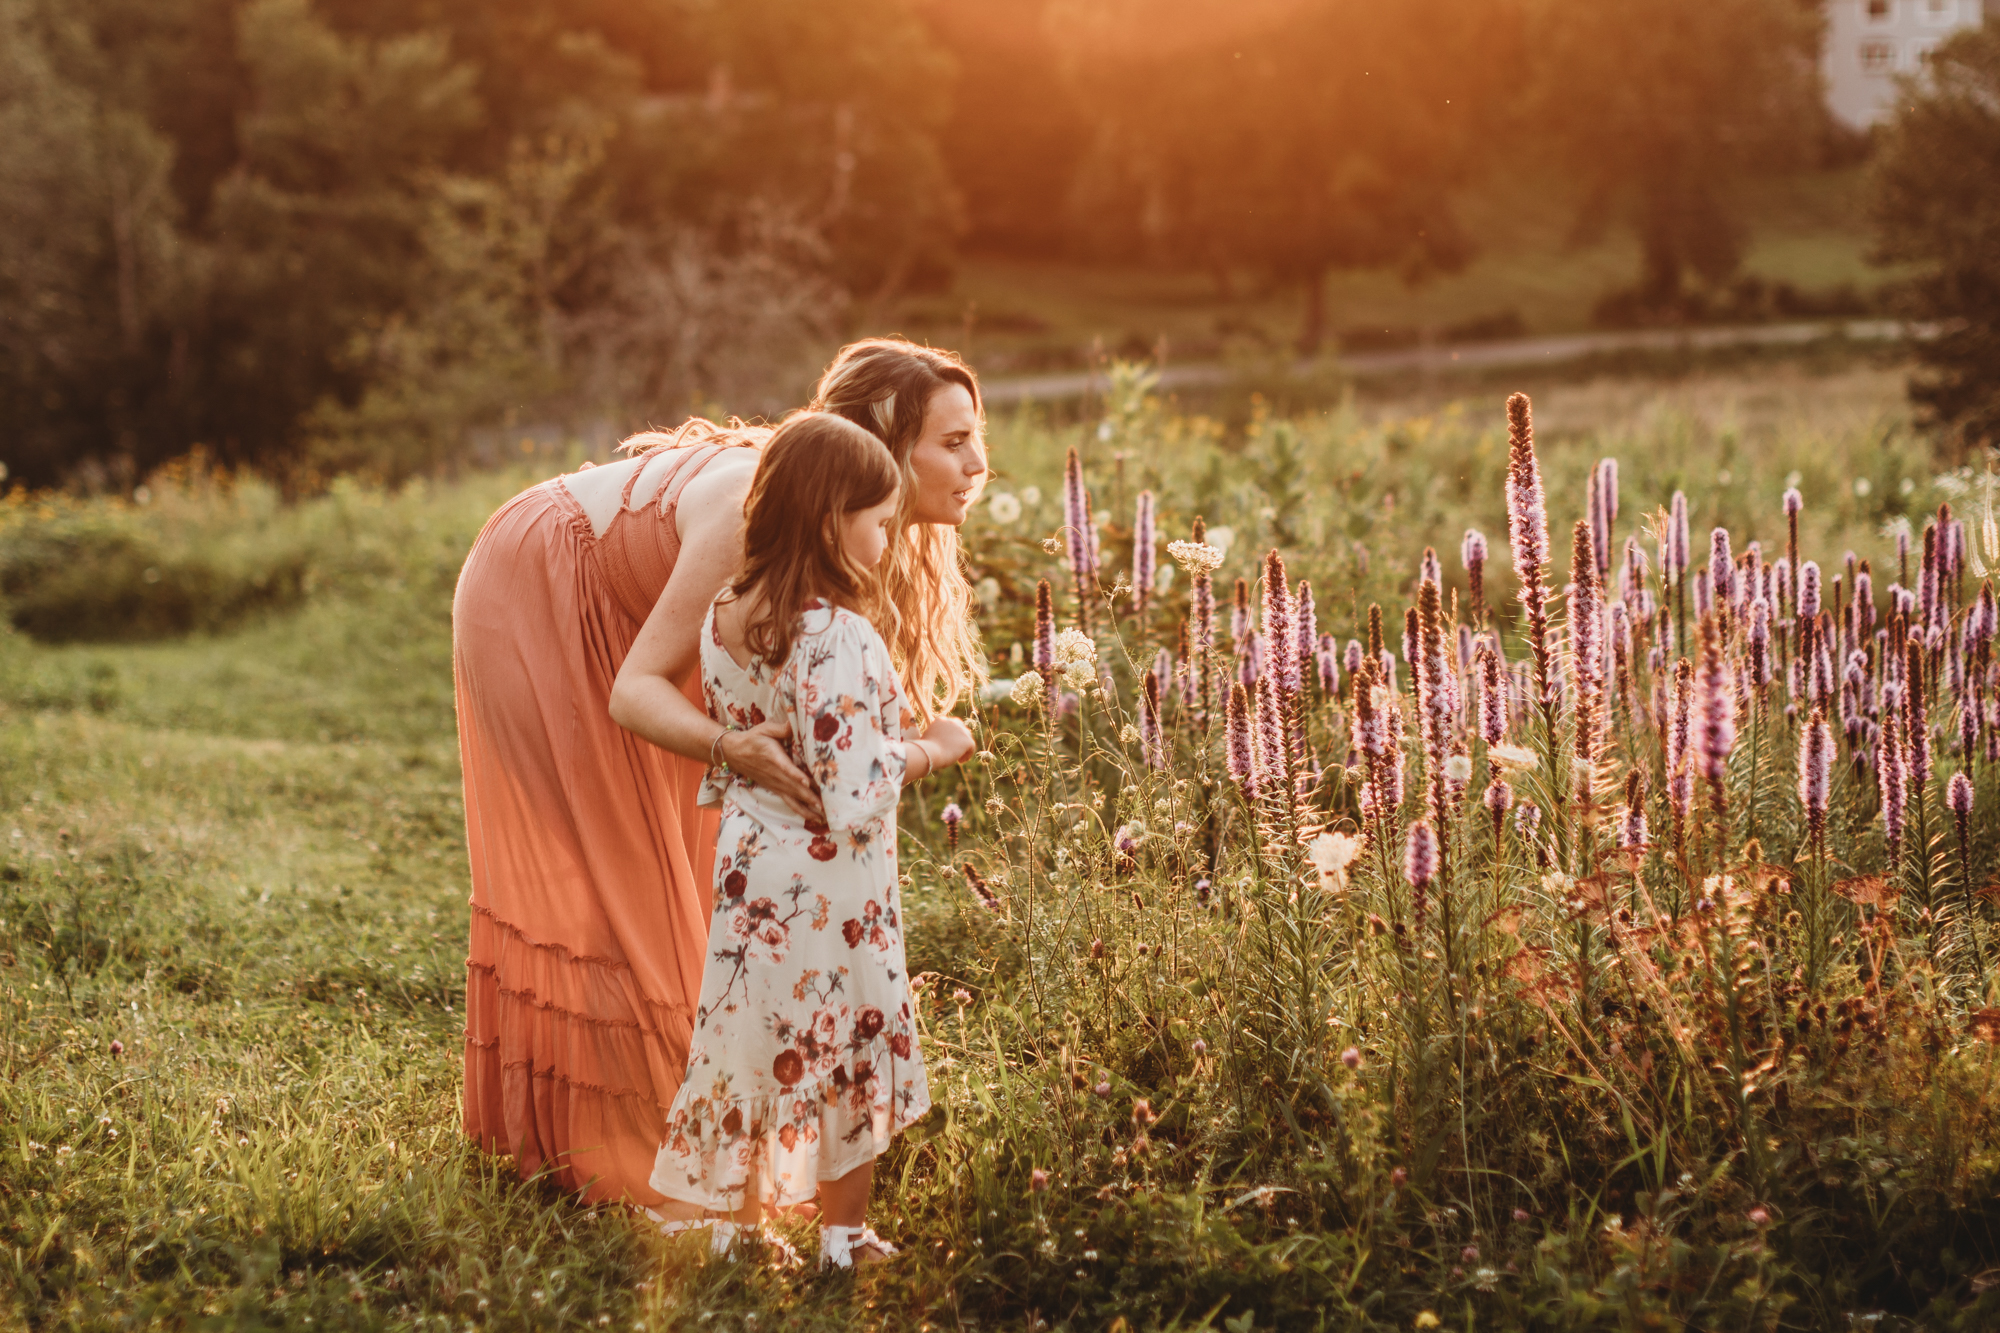 Where to begin when choosing outfits for moms. Beautiful mom and daughter in long dresses during a summertime family photo session in Greater Boston.